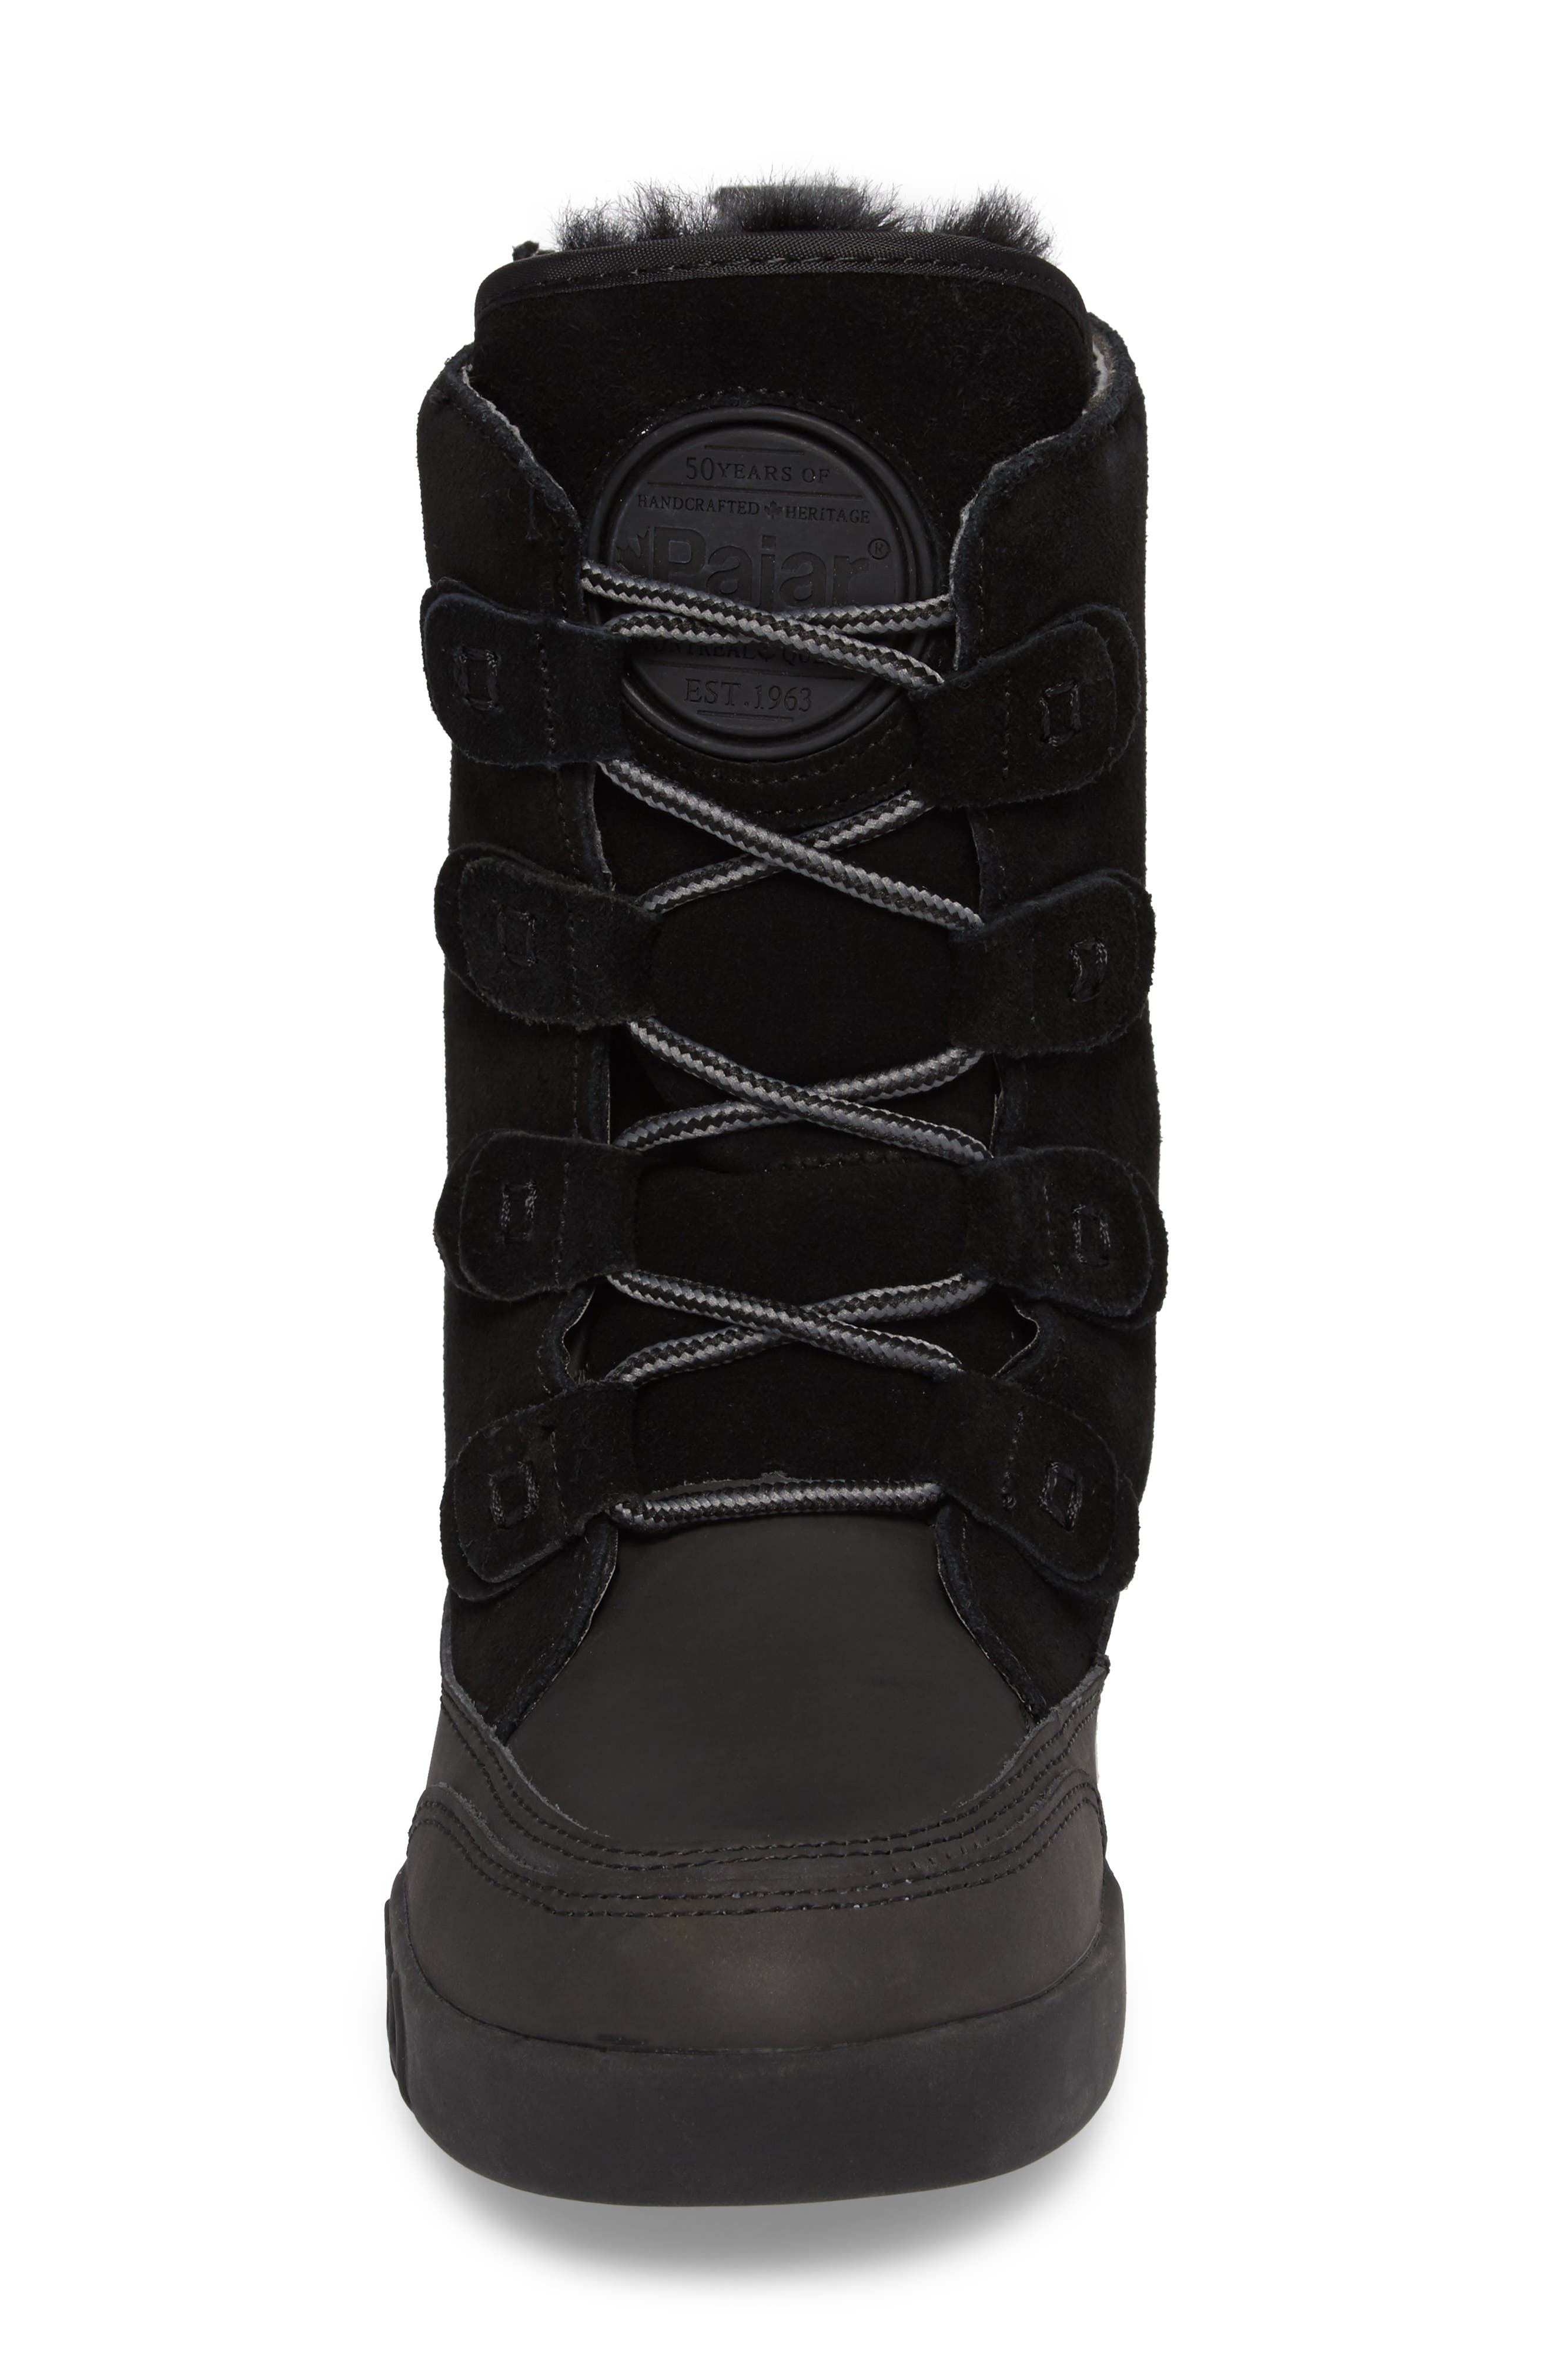 Pamina Insulated Waterproof Boot,                             Alternate thumbnail 4, color,                             Black